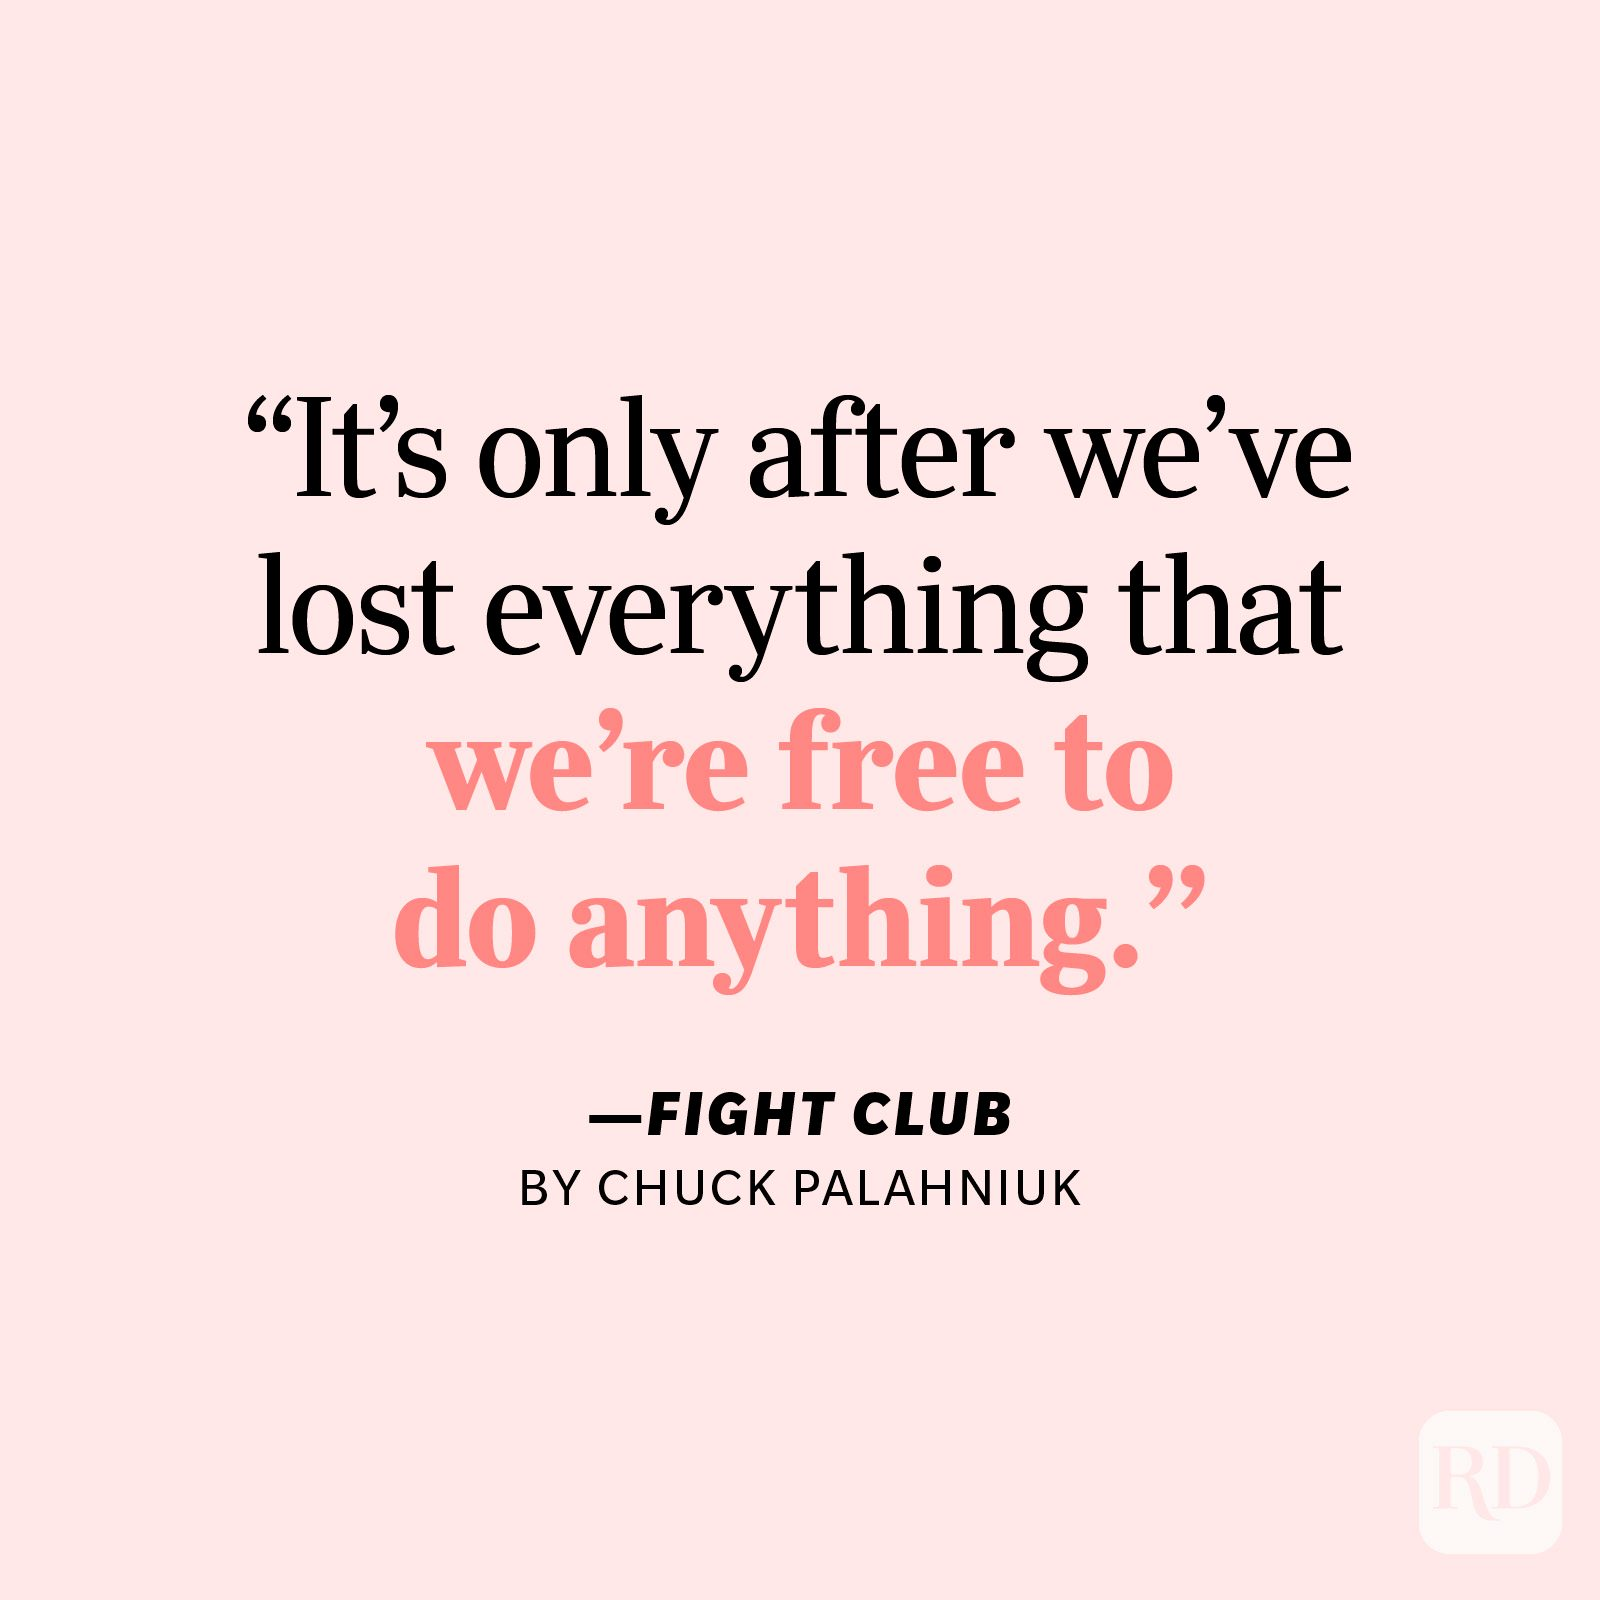 """Fight Club by Chuck Palahniuk """"It's only after we've lost everything that we're free to do anything."""""""